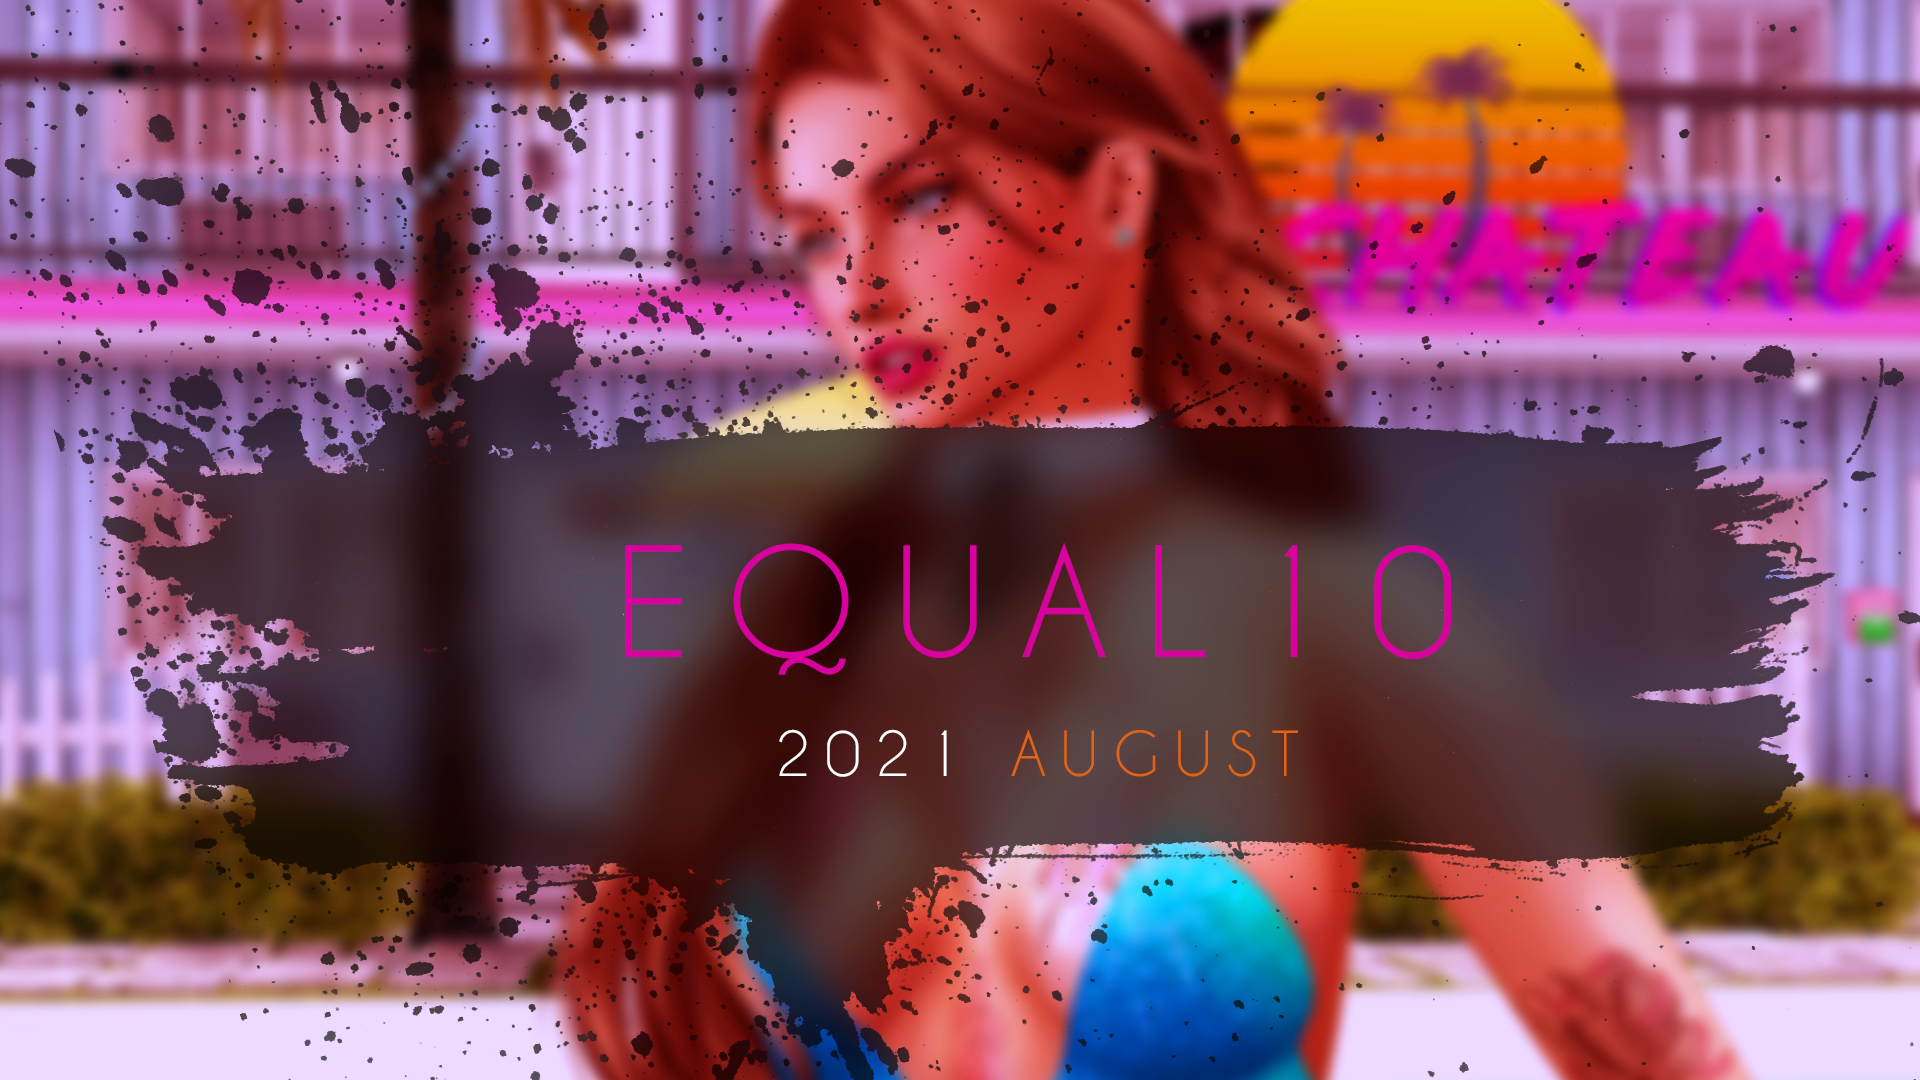 Equal10, the 2021 August Round